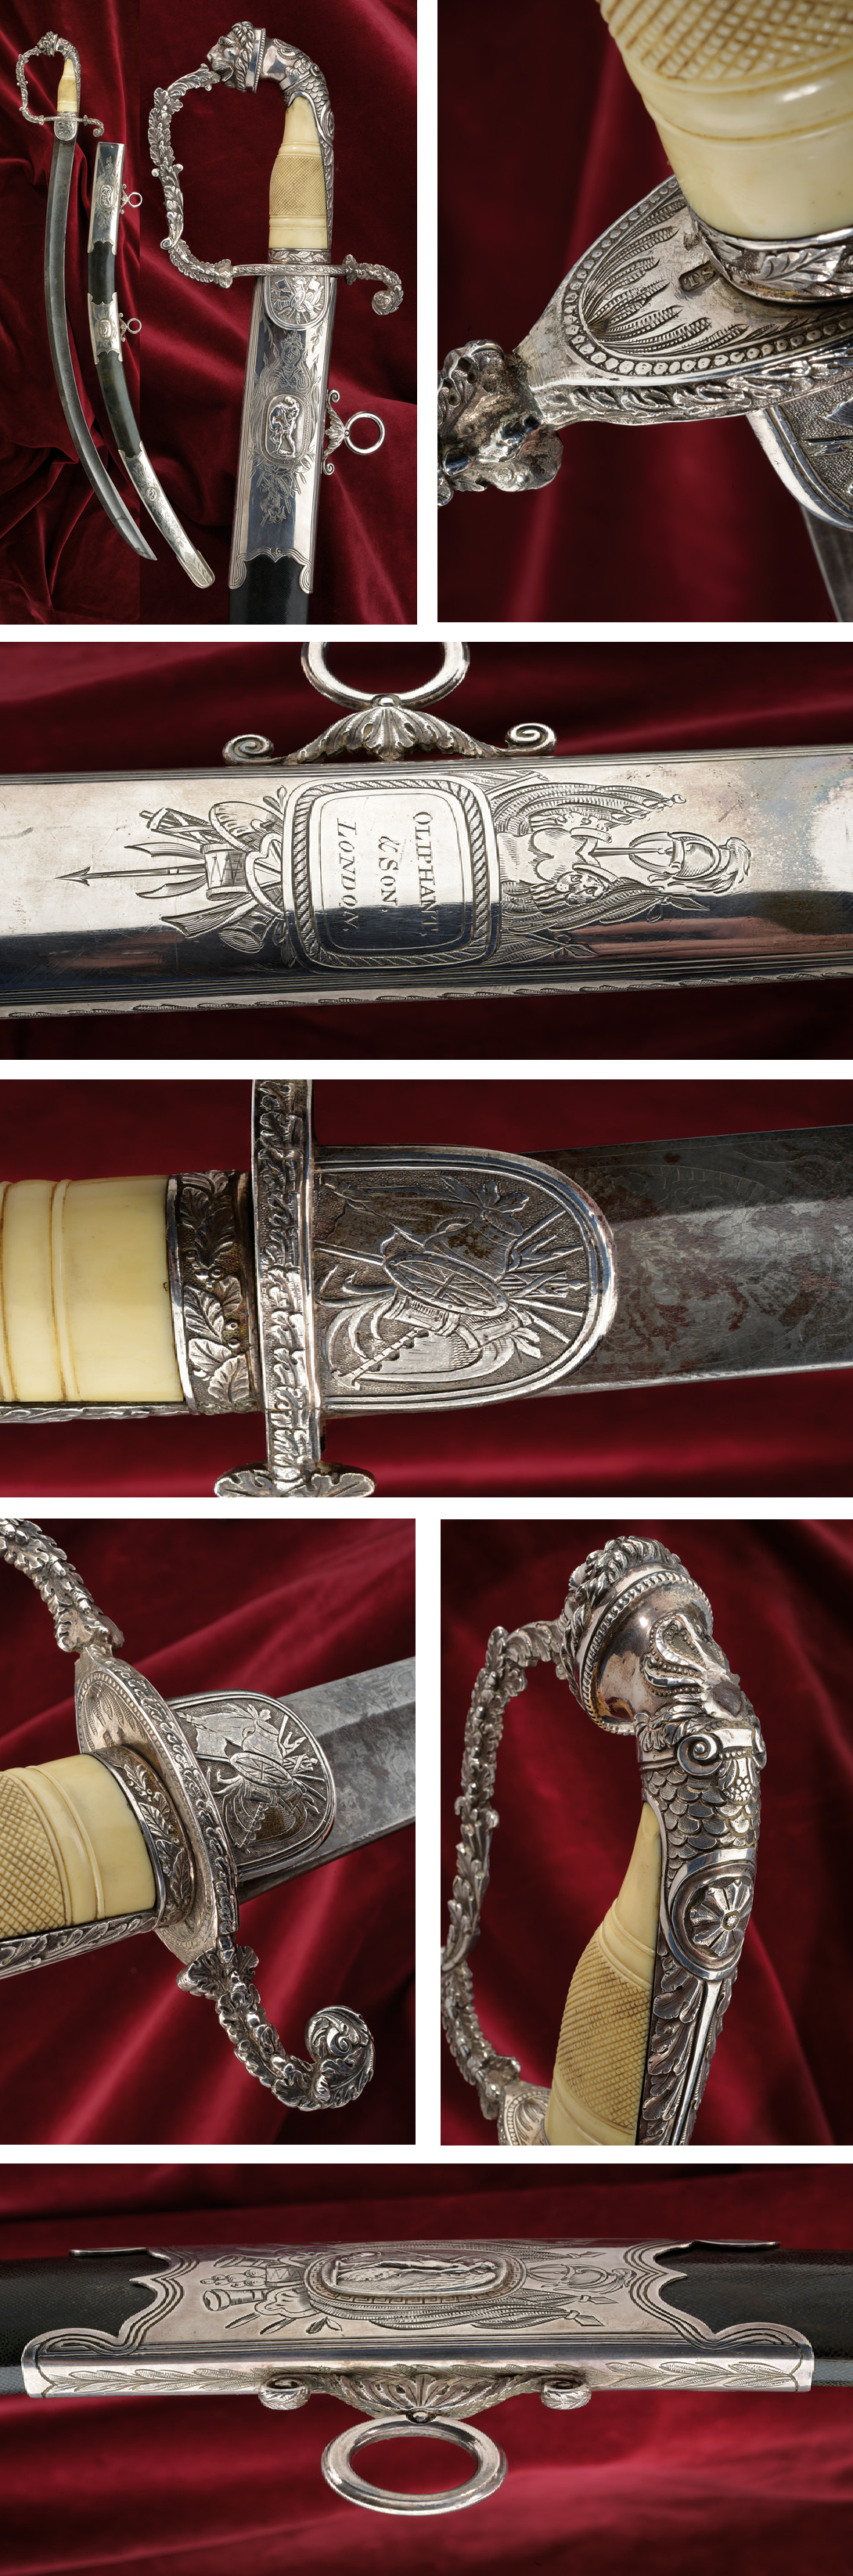 An outstanding silver mounted luxury sabre presented to Major Richard Kelly: provenance: London dating: first quarter of the 19th Century